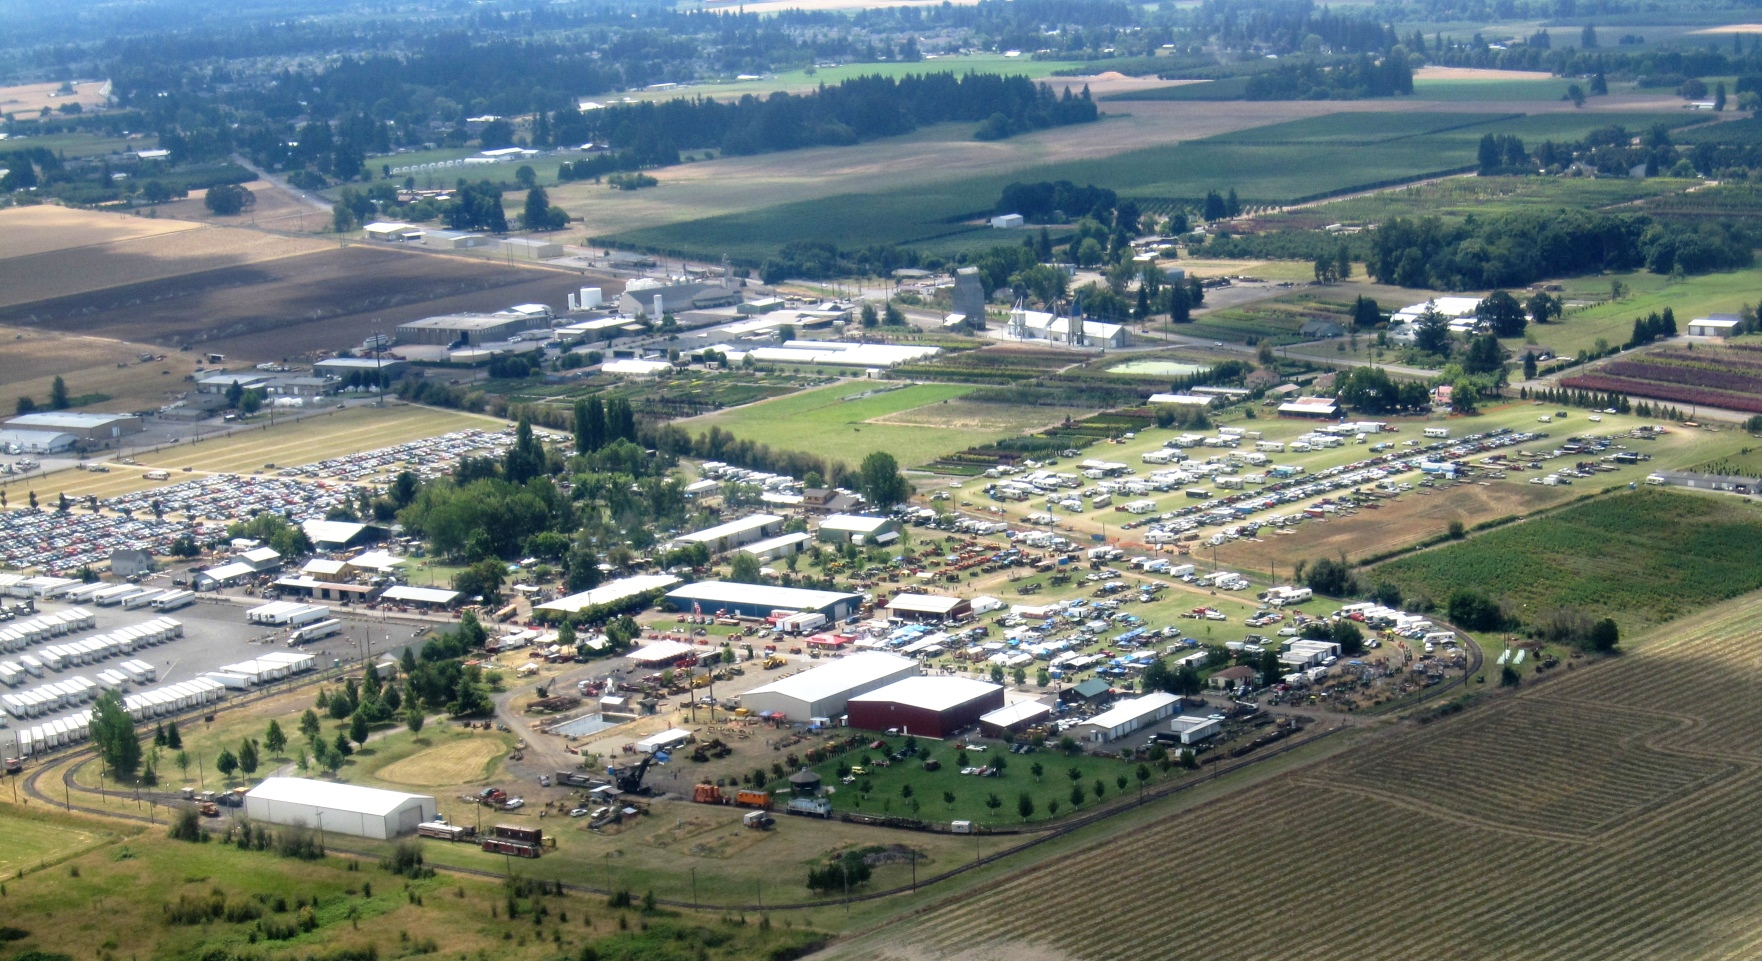 Aerial view of Great Oregon Steam-Up in 2012 Photo Antique Powerland